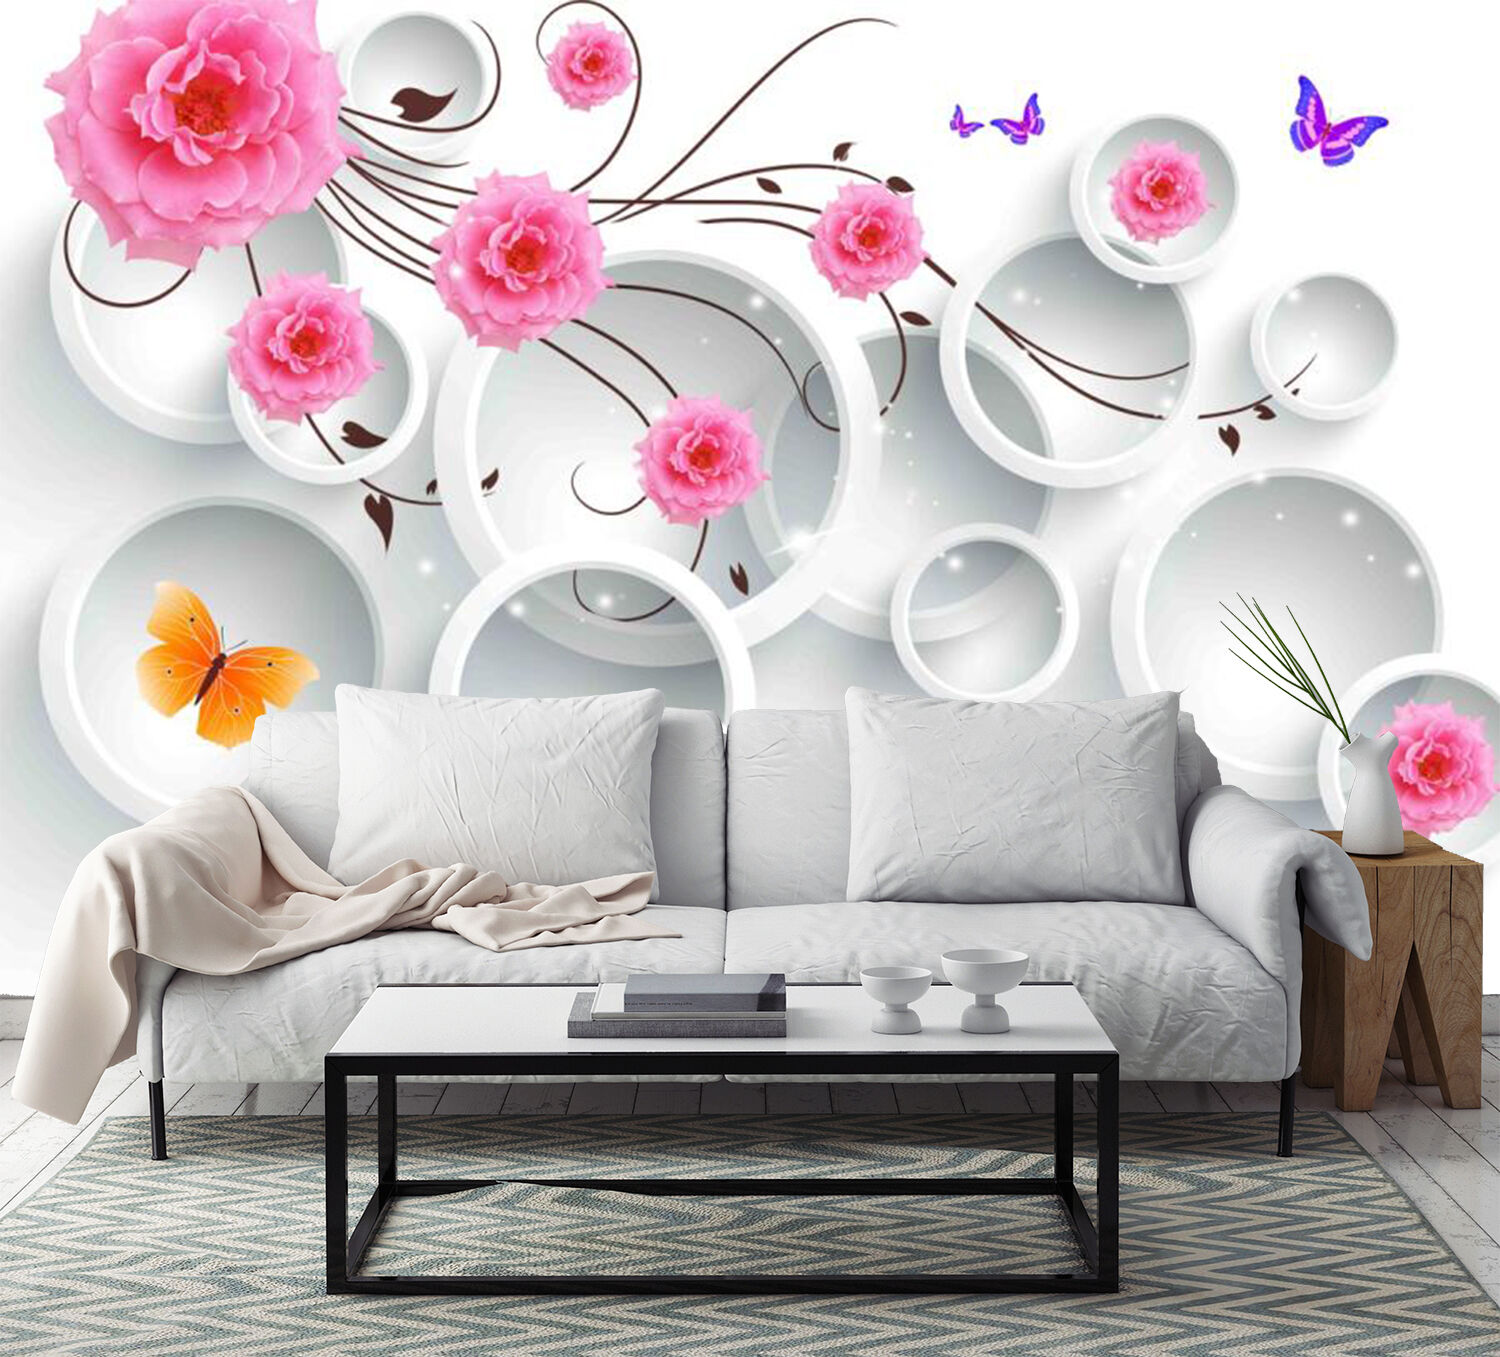 3D Flying Flowers Vines 2552 Paper Wall Print Wall Decal Wall Deco Indoor Murals